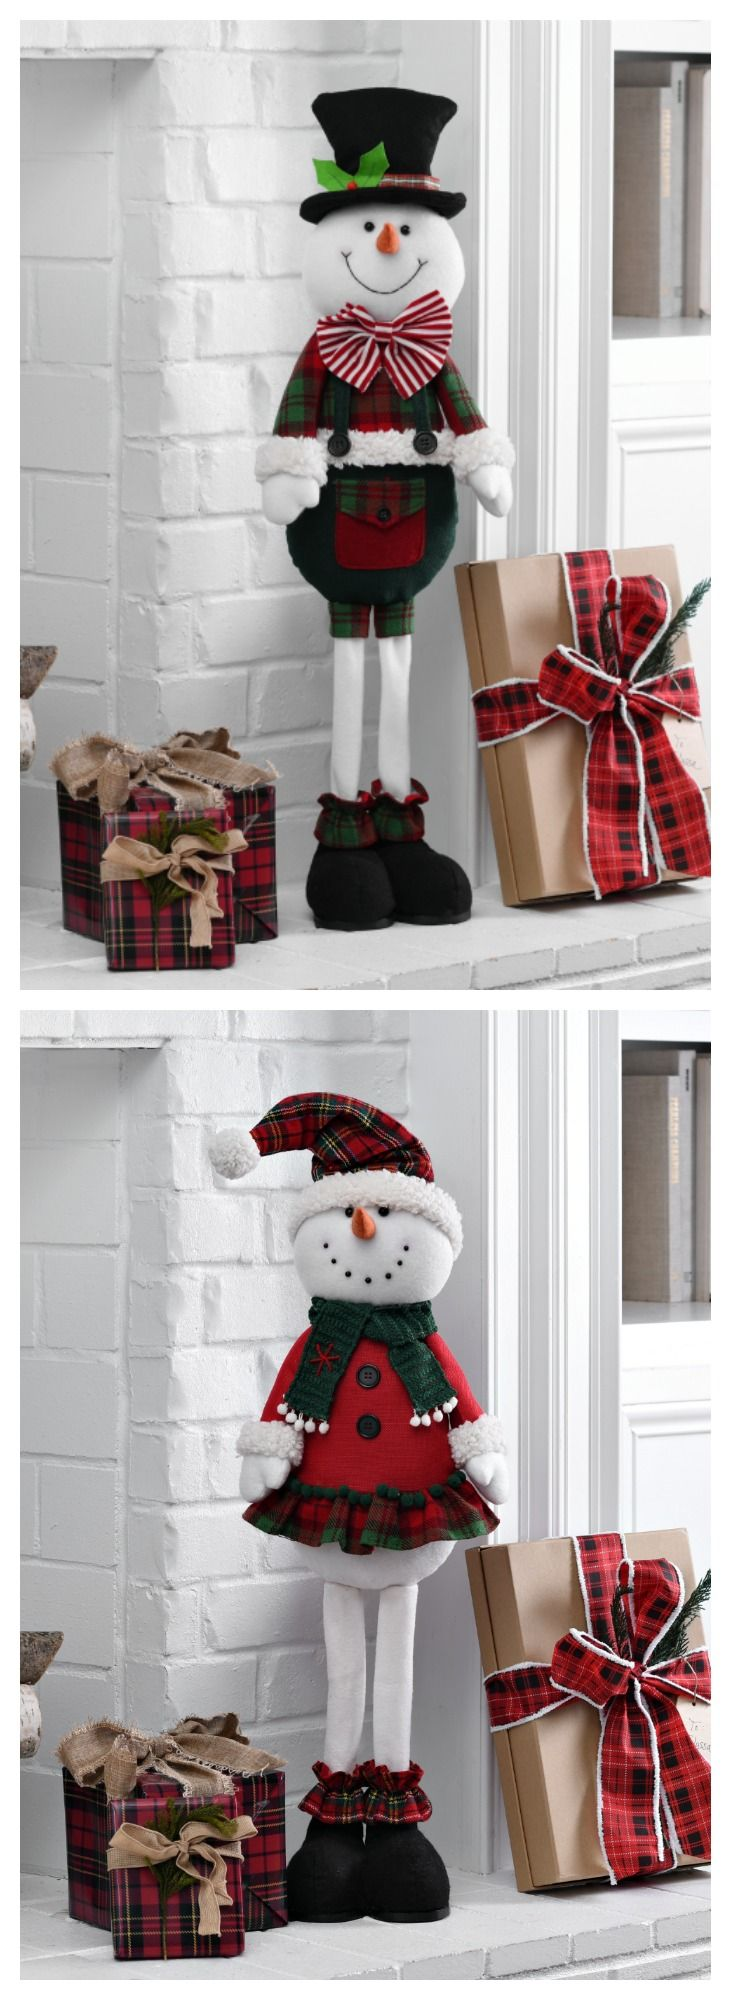 Fill your home with festive characters that will make their holiday! Shop standing snowmen + snowgirls and make Christmas life sized at Kirkland's.